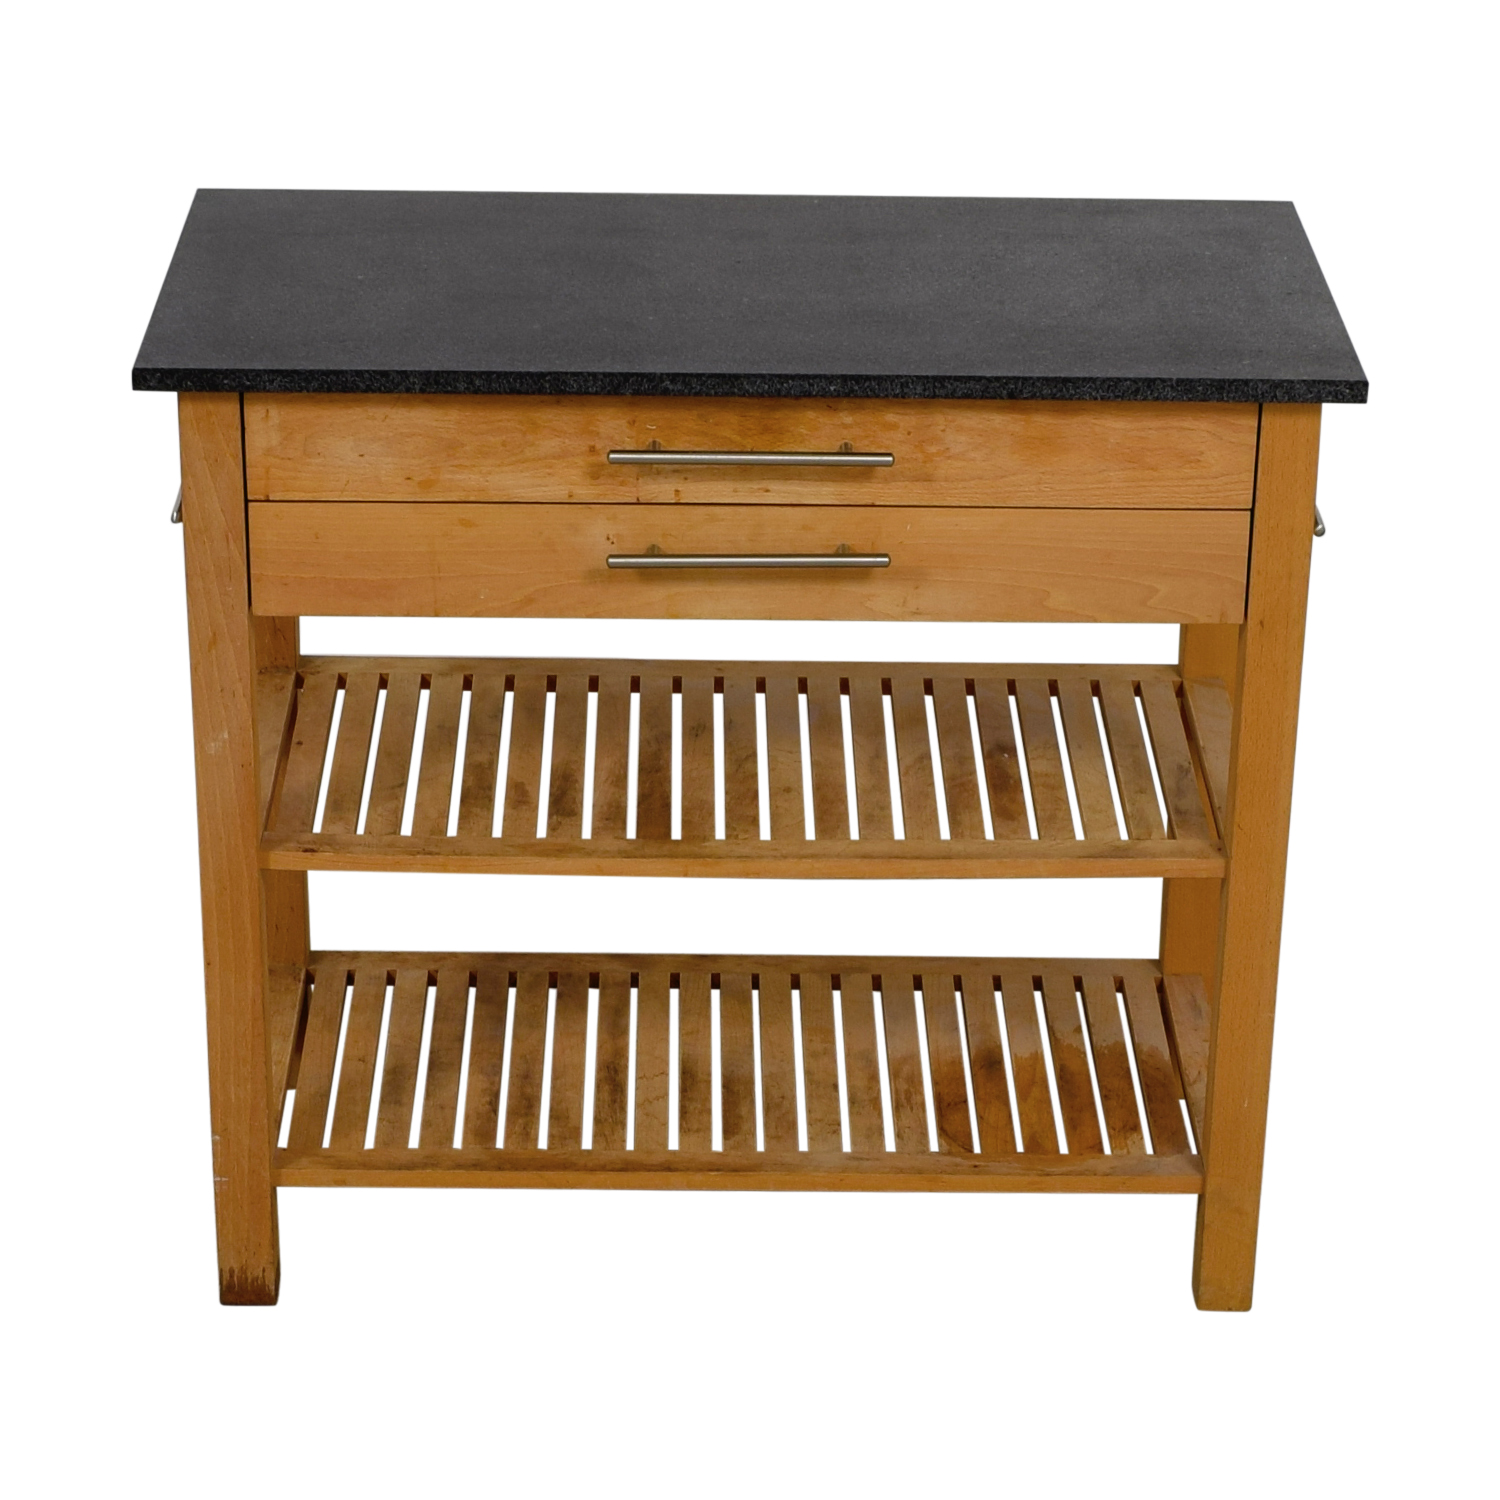 shop  Two-Drawer Butcher Block online